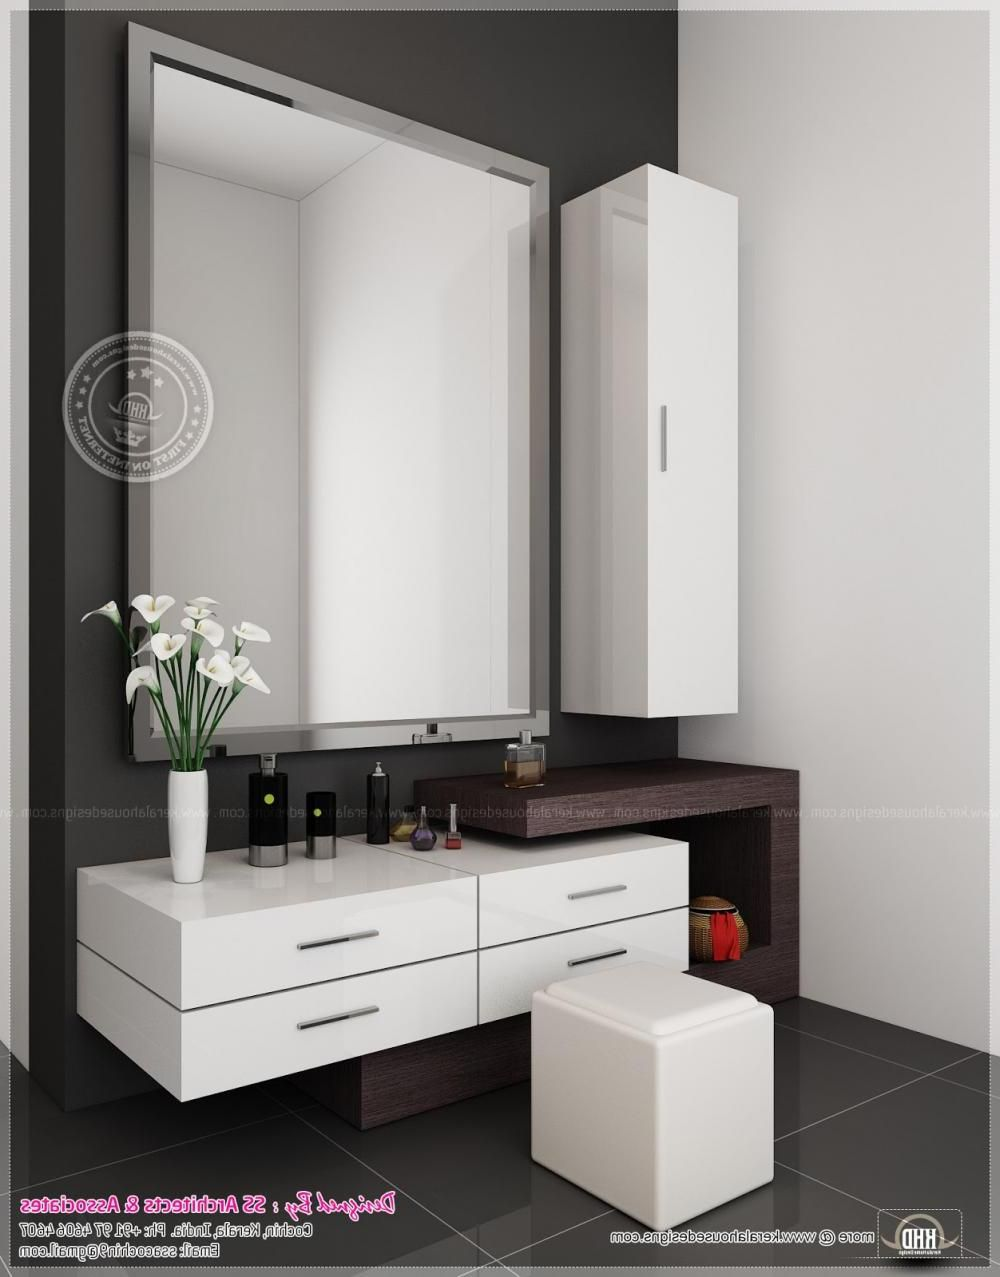 Bedroom dressing table with mirror - Dressing Table With Mirror And Lights Google Search